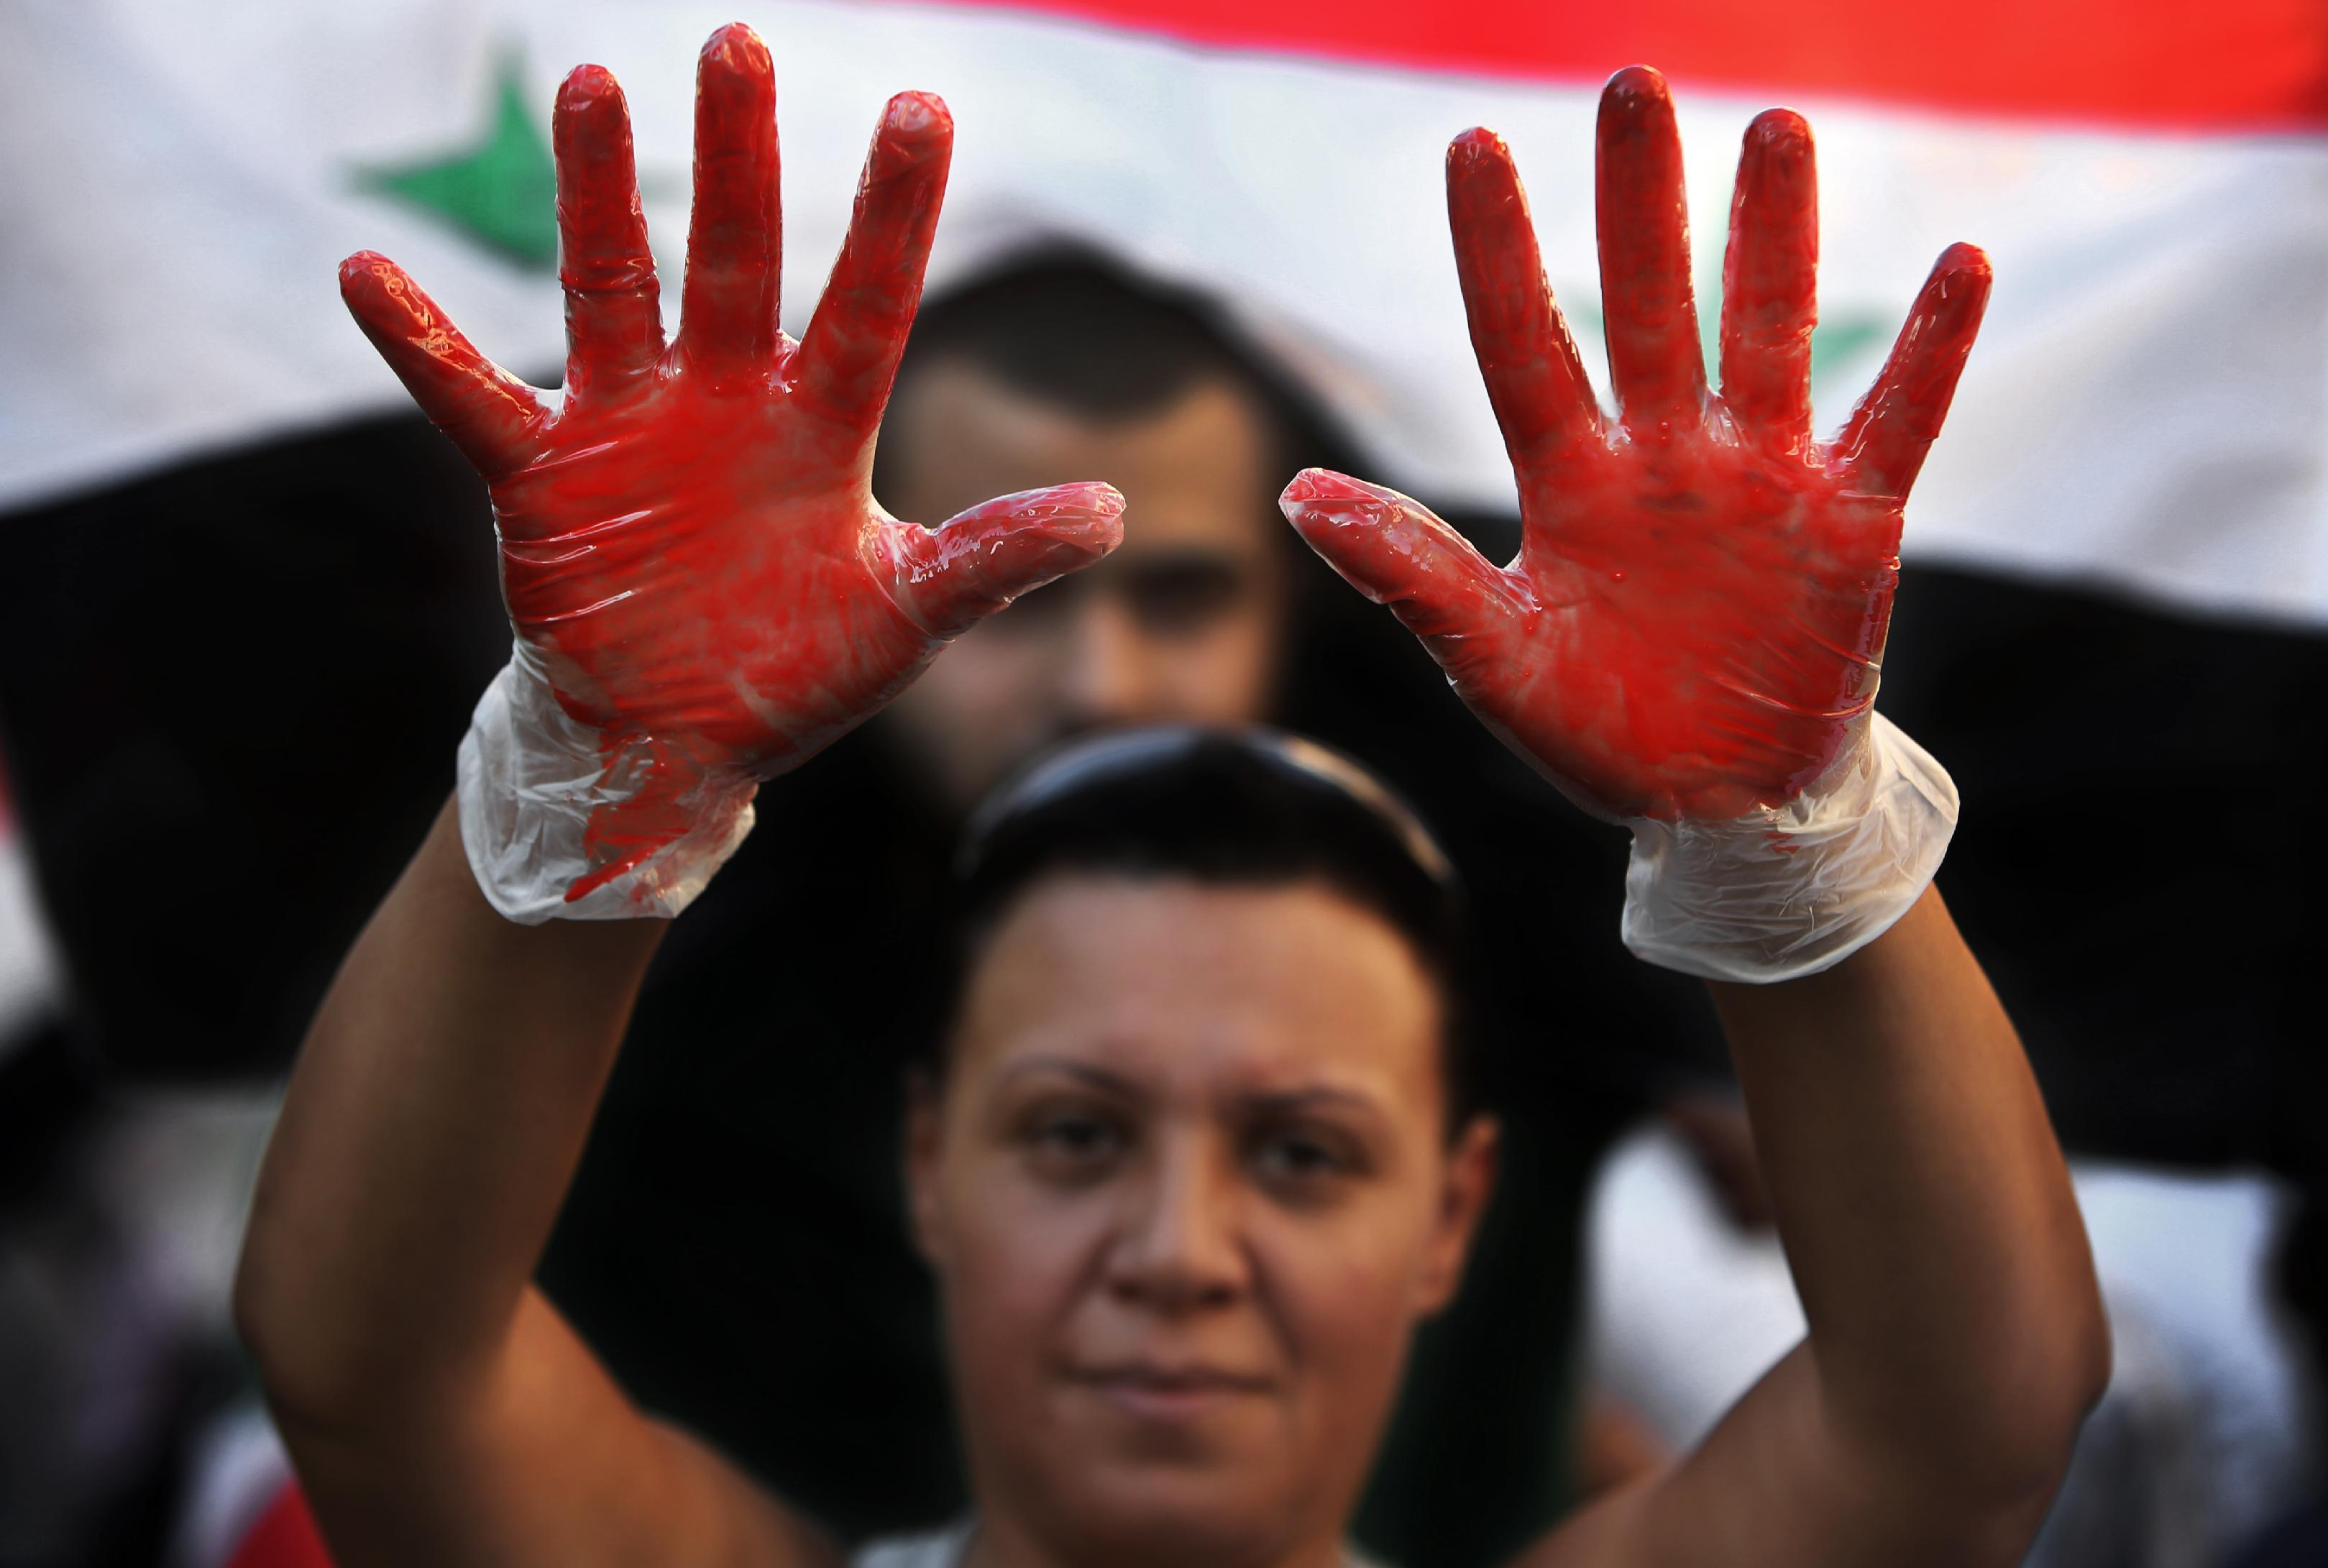 A Lebanese pro-Syrian regime supporter, with her hands painted in red to symbolize blood, attends a demonstration against a possible military strike in Syria, near the U.S. Embassy in Awkar, east of Beirut, Lebanon, Friday, Sept. 6, 2013. The prospect of a U.S.-led strike against Syria has raised concerns of potential retaliation from the Assad regime or its allies. The State Department ordered nonessential U.S. diplomats to leave Lebanon over security concerns and urged private American citizens to depart as well. (AP Photo/Hussein Malla)